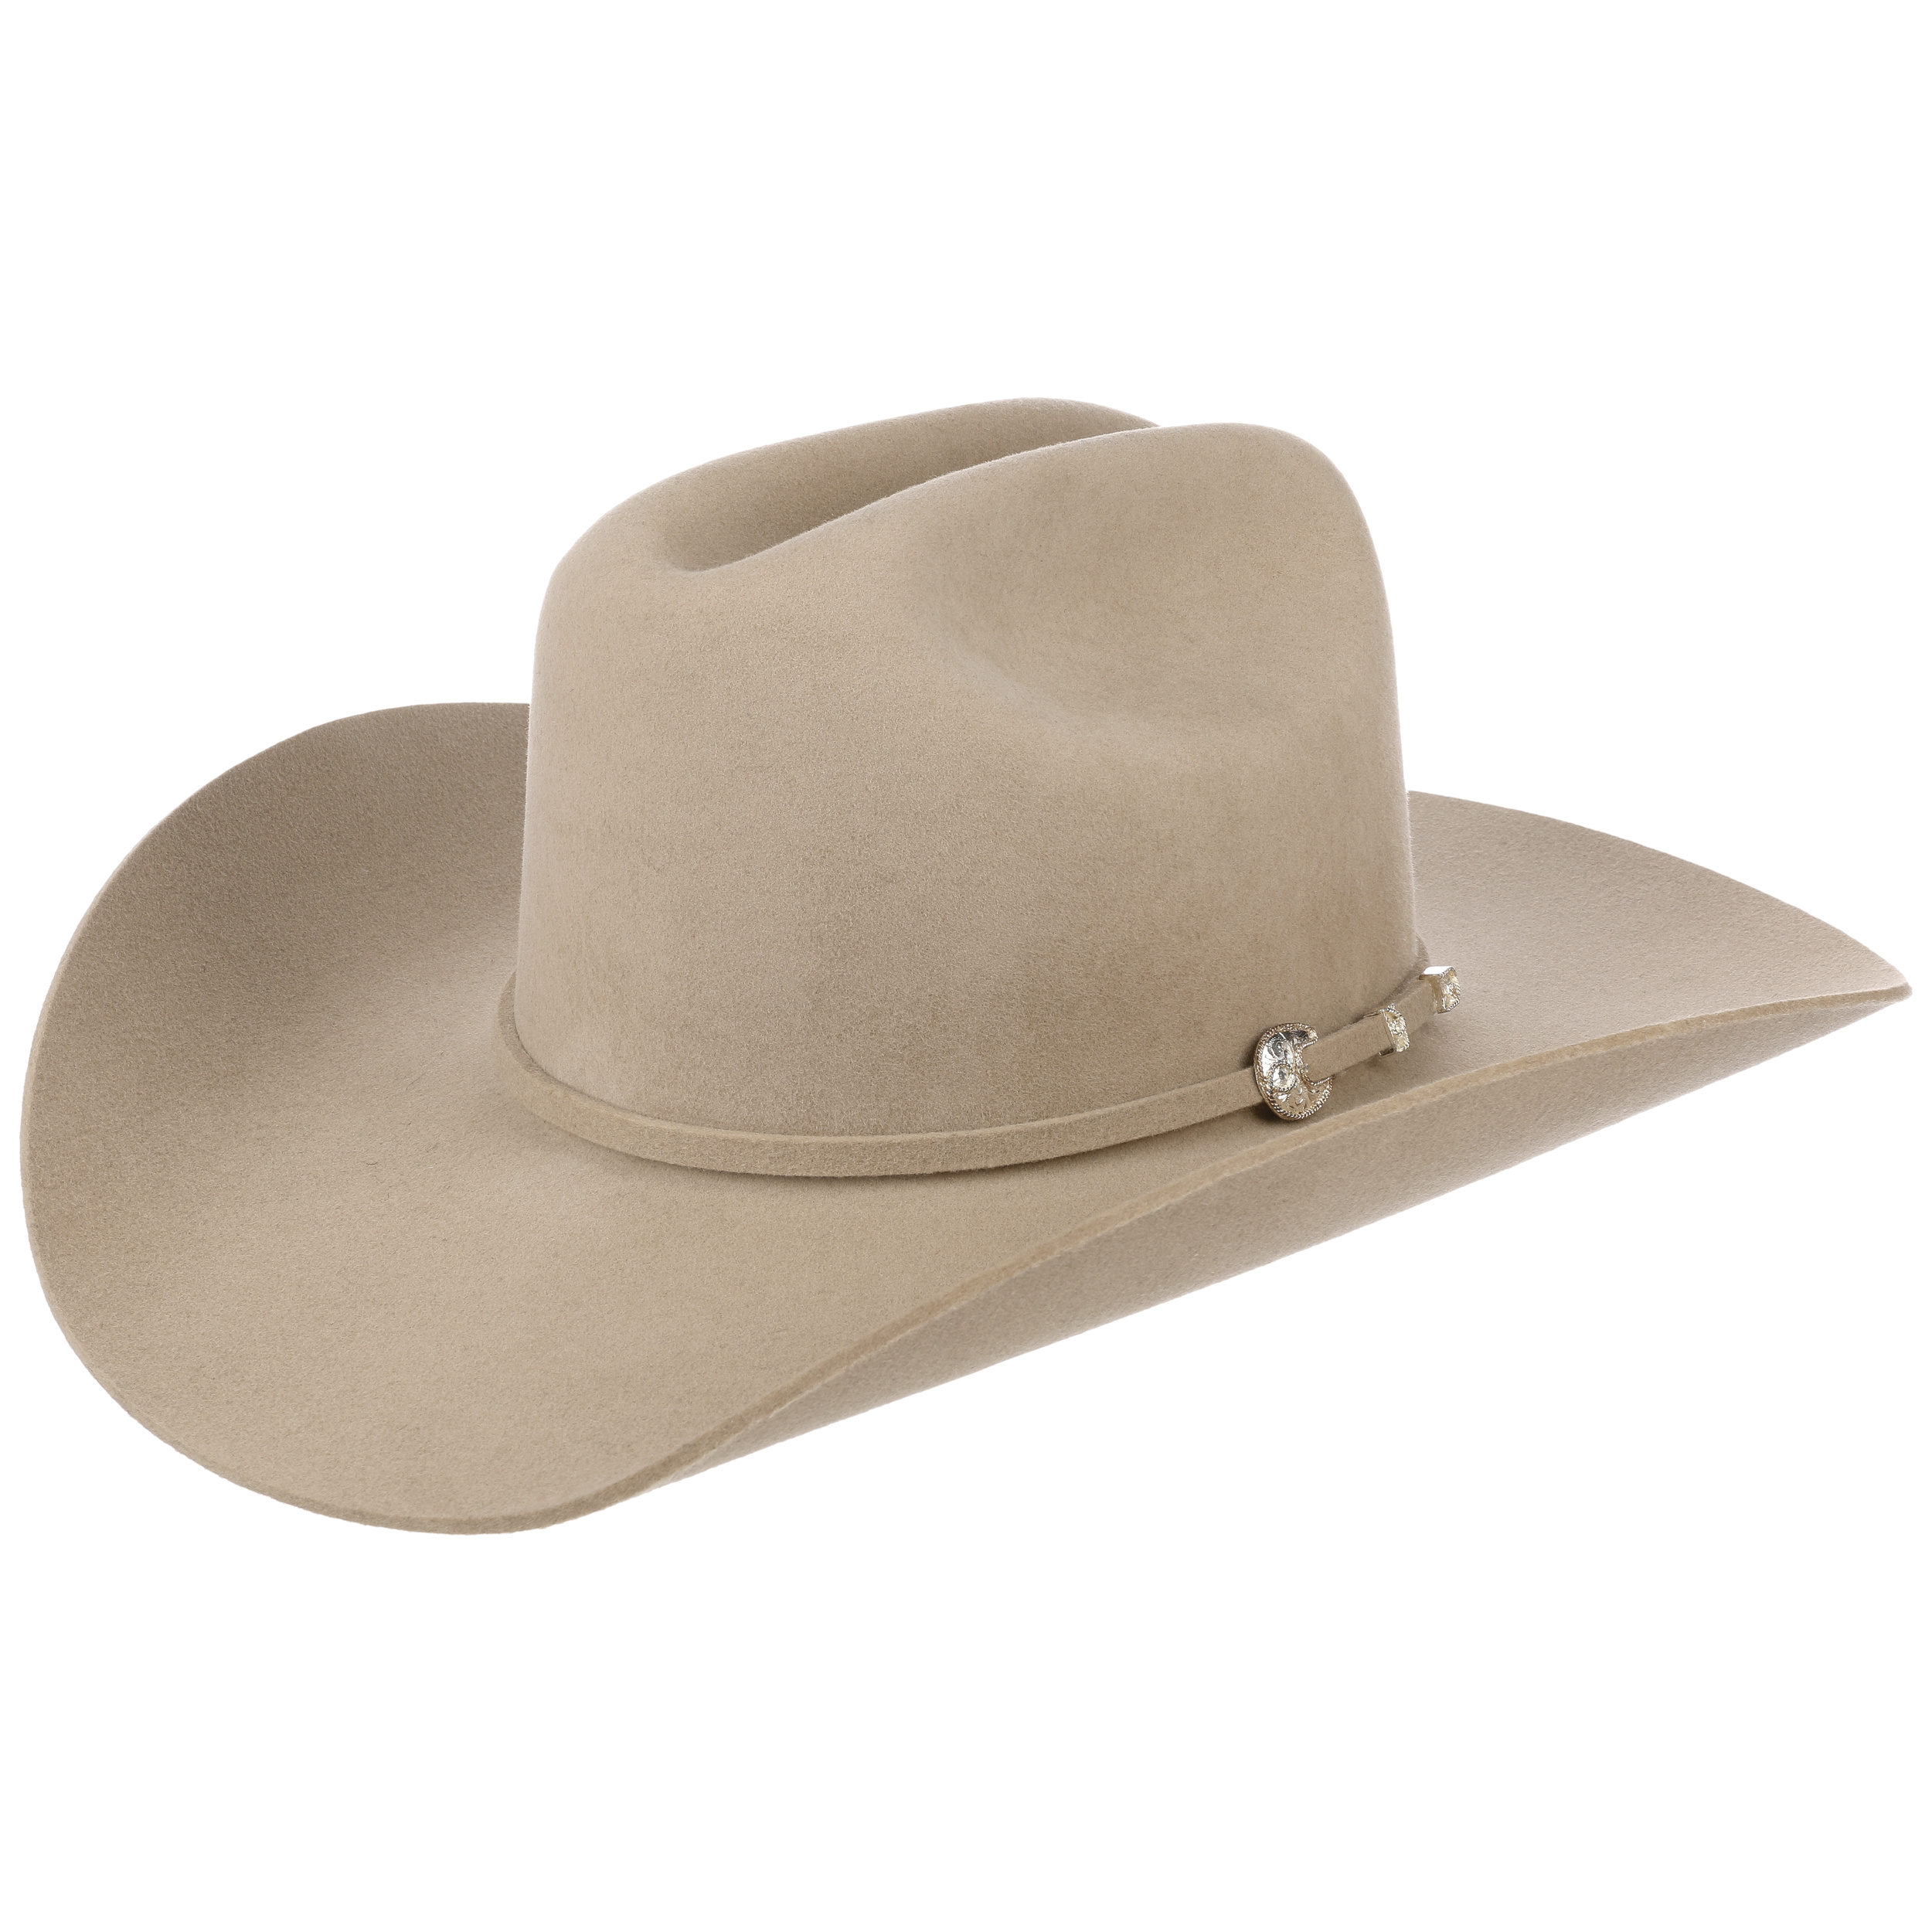 ... marrone 4 · Cappello Western The Valley 4X by Stetson - beige 5 ... 99c99ae33b57